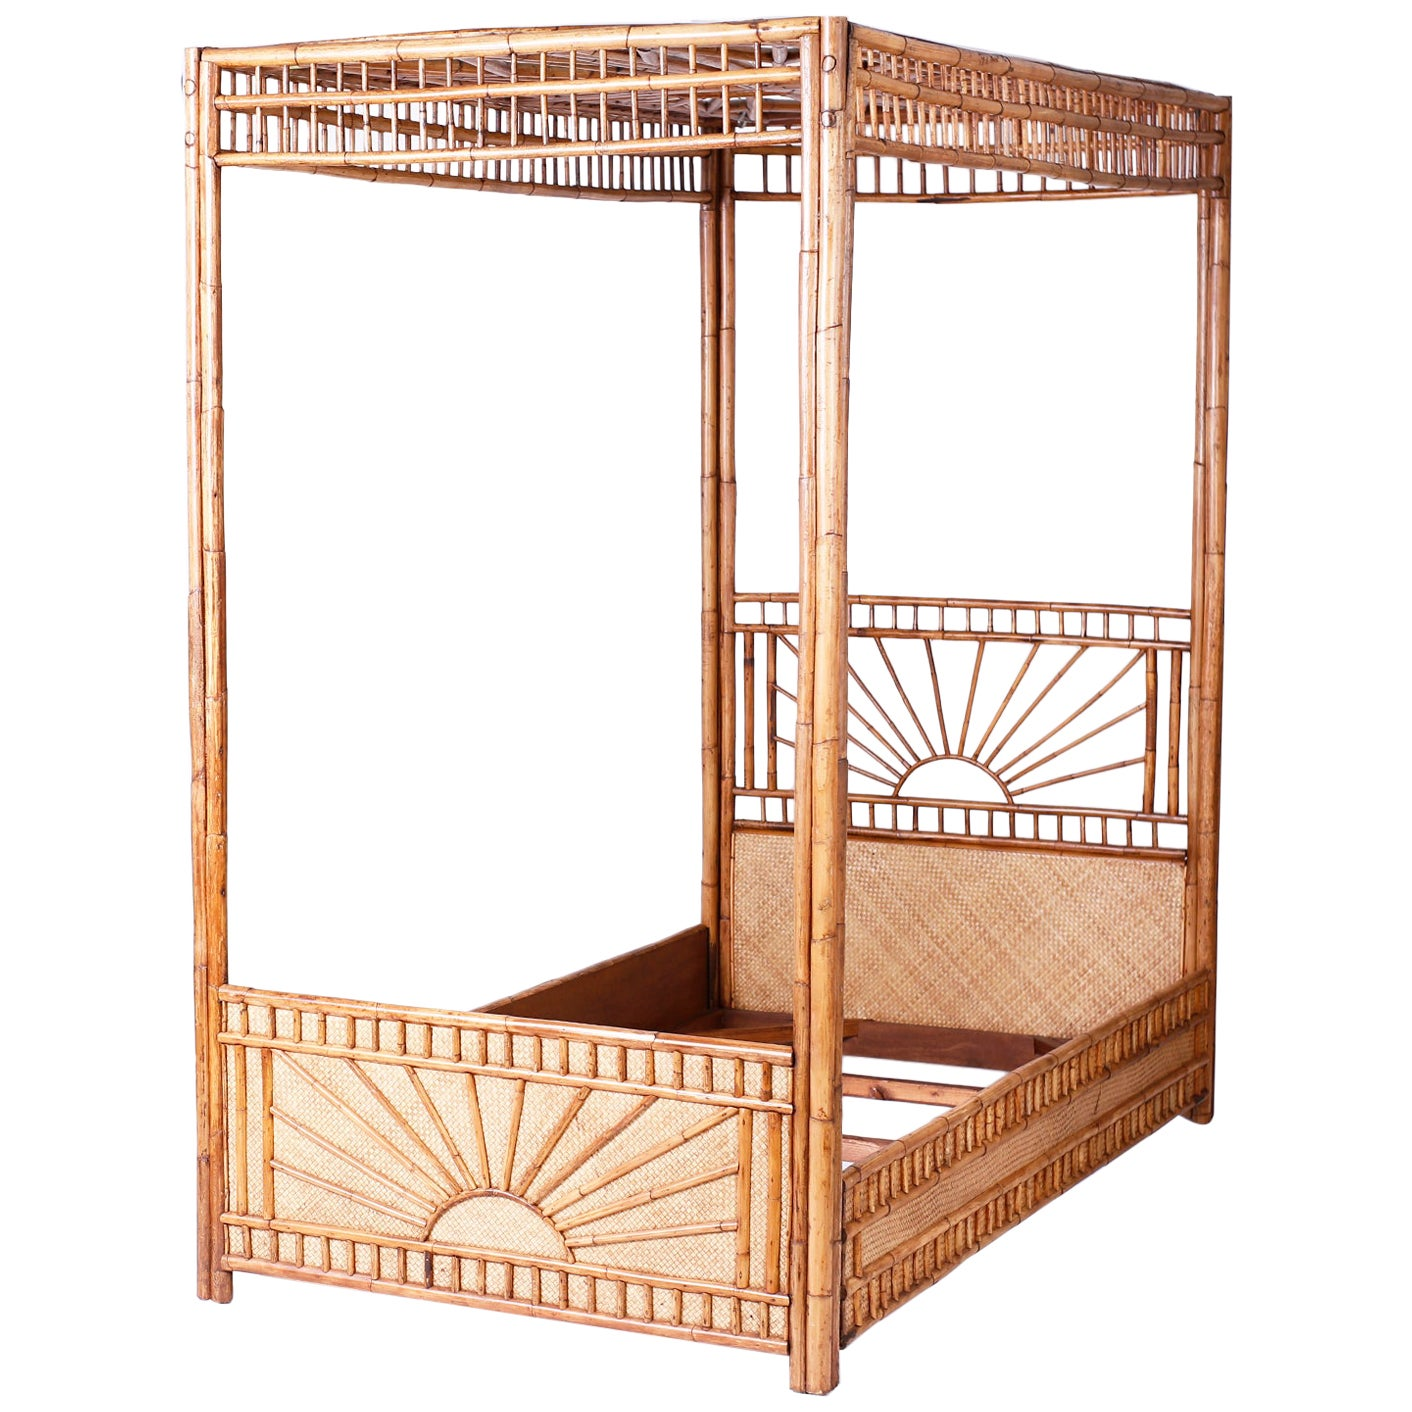 Midcentury Bamboo and Grasscloth Twin Canopy Bed Frame